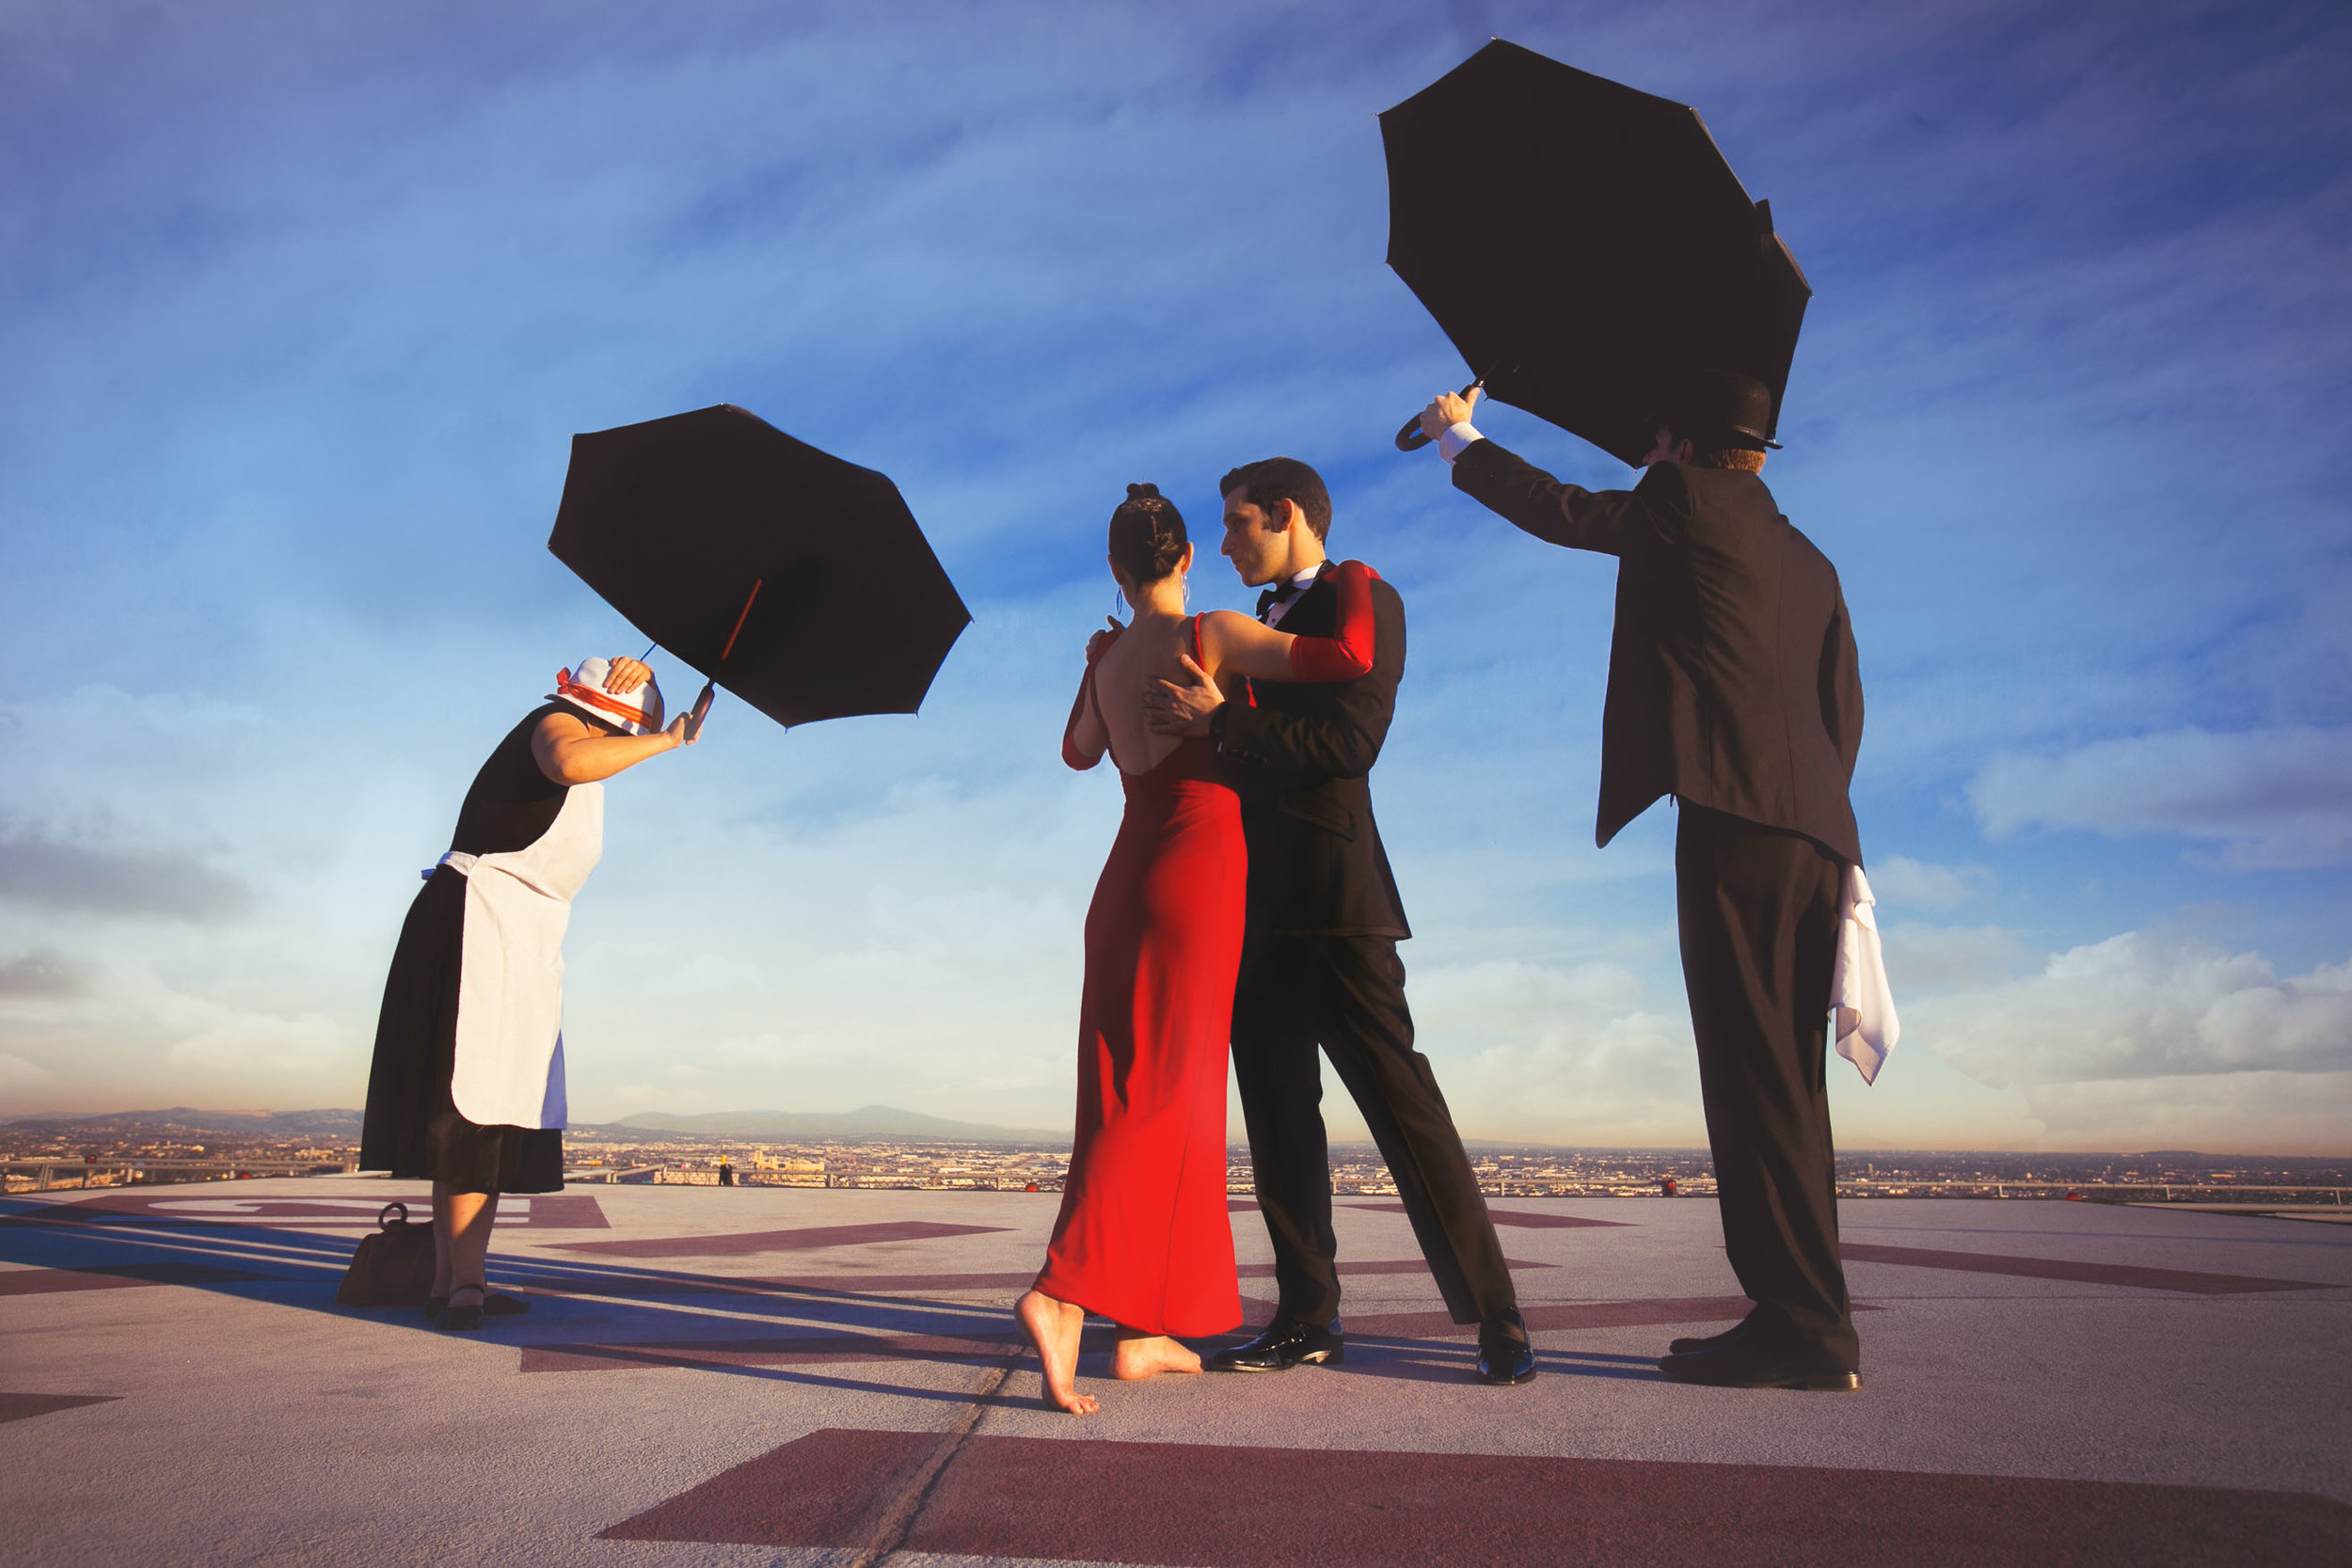 engagement-session-inspired-by-famous-art.jpg